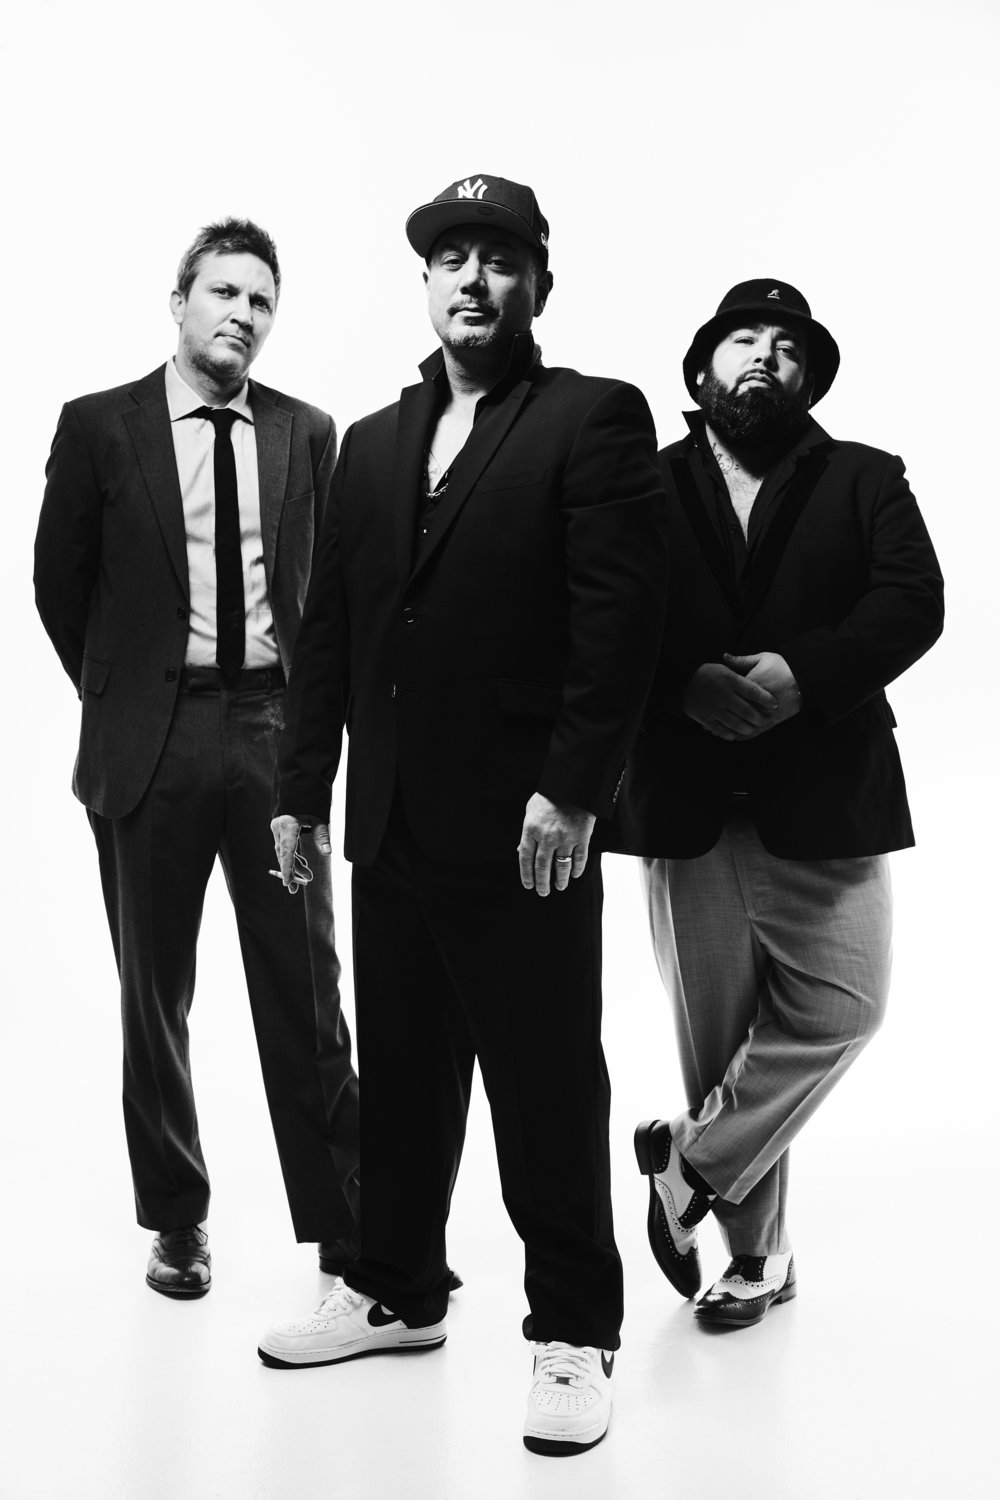 "FUN LOVIN' CRIMINALS   Est. 1993, NYC  They are, still, the world's finest and only purveyors of cinematic hip hop, rock 'n' roll, blues-jazz, latino soul vibes. The planet's best-loved ""cousins from New York"" who, through the mid-late 90s, chronicled life in their native city while bending the global ear to the sonic possibilities of exuberant hip-hop gangster-rock merged with lounge music, funk, mariachi trumpets and 'Bass-o-matic' Barry White. While possibly smoking a cheroot, in a sweat-dripped Puerto Rican nightclub, somewhere on the Lower East Side. Like The Killers and Kings of Leon today, the UK loved them first, the most; whip-smart story-tellers in smarter Saville Row suits, who told vibrant, satirical, comically tall tales of living large in the neon metropolis via music, drugs, crime and existential ennui. With a penchant for a beautiful ""lady"".    Formed in New York in 1993 by nightclub-working colleagues Huey and Fast, FLC gate-crashed the euphoric Brit-pop party in 1996 and brought along some unexpectedly unique swag, the generational classic album 'Come Find Yourself' which gave us the cackling refrain ""stick 'em up punk, it's the Fun Lovin' Criminal"" and the Pulp Fiction–sampling 'Scooby Snacks', the Valium assisted stick-up stunner with its immortal refrain, ""Runnin' around, robbin' banks, all whacked on the Scooby Snacks"". Huey, at 27, was already an ex-con and Desert Storm marine veteran, a charismatic New York smooth-talker with Irish/Puerto Rican roots and immaculately tended goatee. Girls, you might say, responded. The mid-to late 90s was a twirling martini cocktail of world travel, acclaim and phenomenal album sales, including three weeks as support on the U.S PopMart tour with U2 in 1997 (Huey refers to Bono as ""rich Uncle Paul""), through second album '100% Columbian' (1999, featuring their Barry White eulogy 'Love Unlimited') and the early 2001 release of third album 'Loco.' ""1995 to 2002 was living the dream for us,"" smiles Fast. ""It was just non-stop fun. We were out on tour for seven years, we lived it and we don't have any regrets.""    FLC released the albums 'Welcome To Poppy's' in 2003 and 'Livin' In The City' in 2005. The last studio album released was 'Classic Fantastic' in 2010. 2011 saw the release of their triple live album 'Fun, Live, and Criminal'. The band released a live concert film titled 'The Bong Remains The Same' in 2014 featuring 26 live songs from a performance at Shepherds Bush Empire in London on their 2010 Classic Fantastic tour. September, 2015 will mark the 20th anniversary of the bands first ever live shows at The Tunnel nightclub in New York City. A world tour is currently being setup to celebrate 20 years of FLC. The band will be performing their debut album 'Come Find Yourself' in full from start to finish.    Their reputation as a live band spectacular grew, which resonates today - ""anybody who ever plays after us at a festival really does not like that spot,"" guffaws Huey – playing Glastonbury 2008 (on the Jazz Word Stage) to thunderous reception. ""The guy who ran the Jazz/World stage at Glastonbury,"" says Huey, ""told us, 'there were 40,000 people watching your set, whoever was on after you and had half that'. There's still people who know. If they're looking at the flyer at a festival, 'Dude! Fun Lovin' Criminals are playing in a half hour.' And those are our people. To get to them is why we make music.""    The trio, now all relocated to the UK have left the cartoon New York netherworld behind for a colossal outdoors party, creating self-produced classics recorded in their London studio's featuring life-long ""fourth member"", the Grammy-award winning hip-hop engineer Tim Latham ISP (A Tribe Called Quest, De La Soul, Lou Reed, Citizen Cope…and Britney Spears). ""Well, we're still guys from New York,"" grins the incorrigible Huey. ""We keep in the forefront of our minds that any day above ground is a good day. That's No.1. No.2, you've got the love of your friends and family. No.3, you have to laugh a little during the day. No one's planting a flag here, no-one's curing cancer but you have a hard week, you get home, whatever your poison is, have a glass of wine, smoke your spliff and go, 'phew, I'm glad that's over' - that's what we're here for. For that exact moment when you can just put aside everyday bullshit."